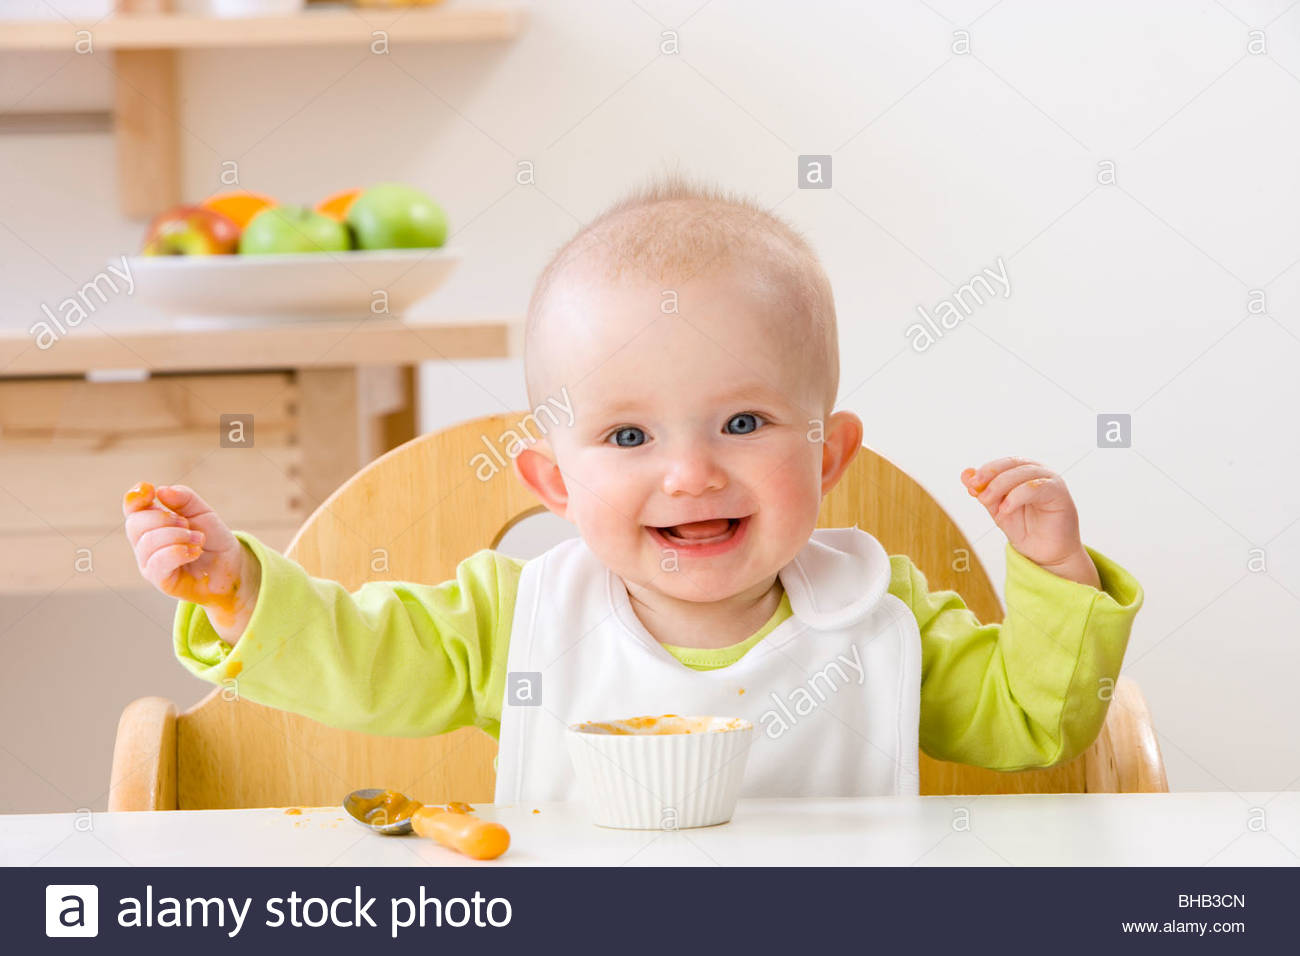 Baby Food Chair Happy Baby Girl In High Chair Eating Stock Photo Royalty